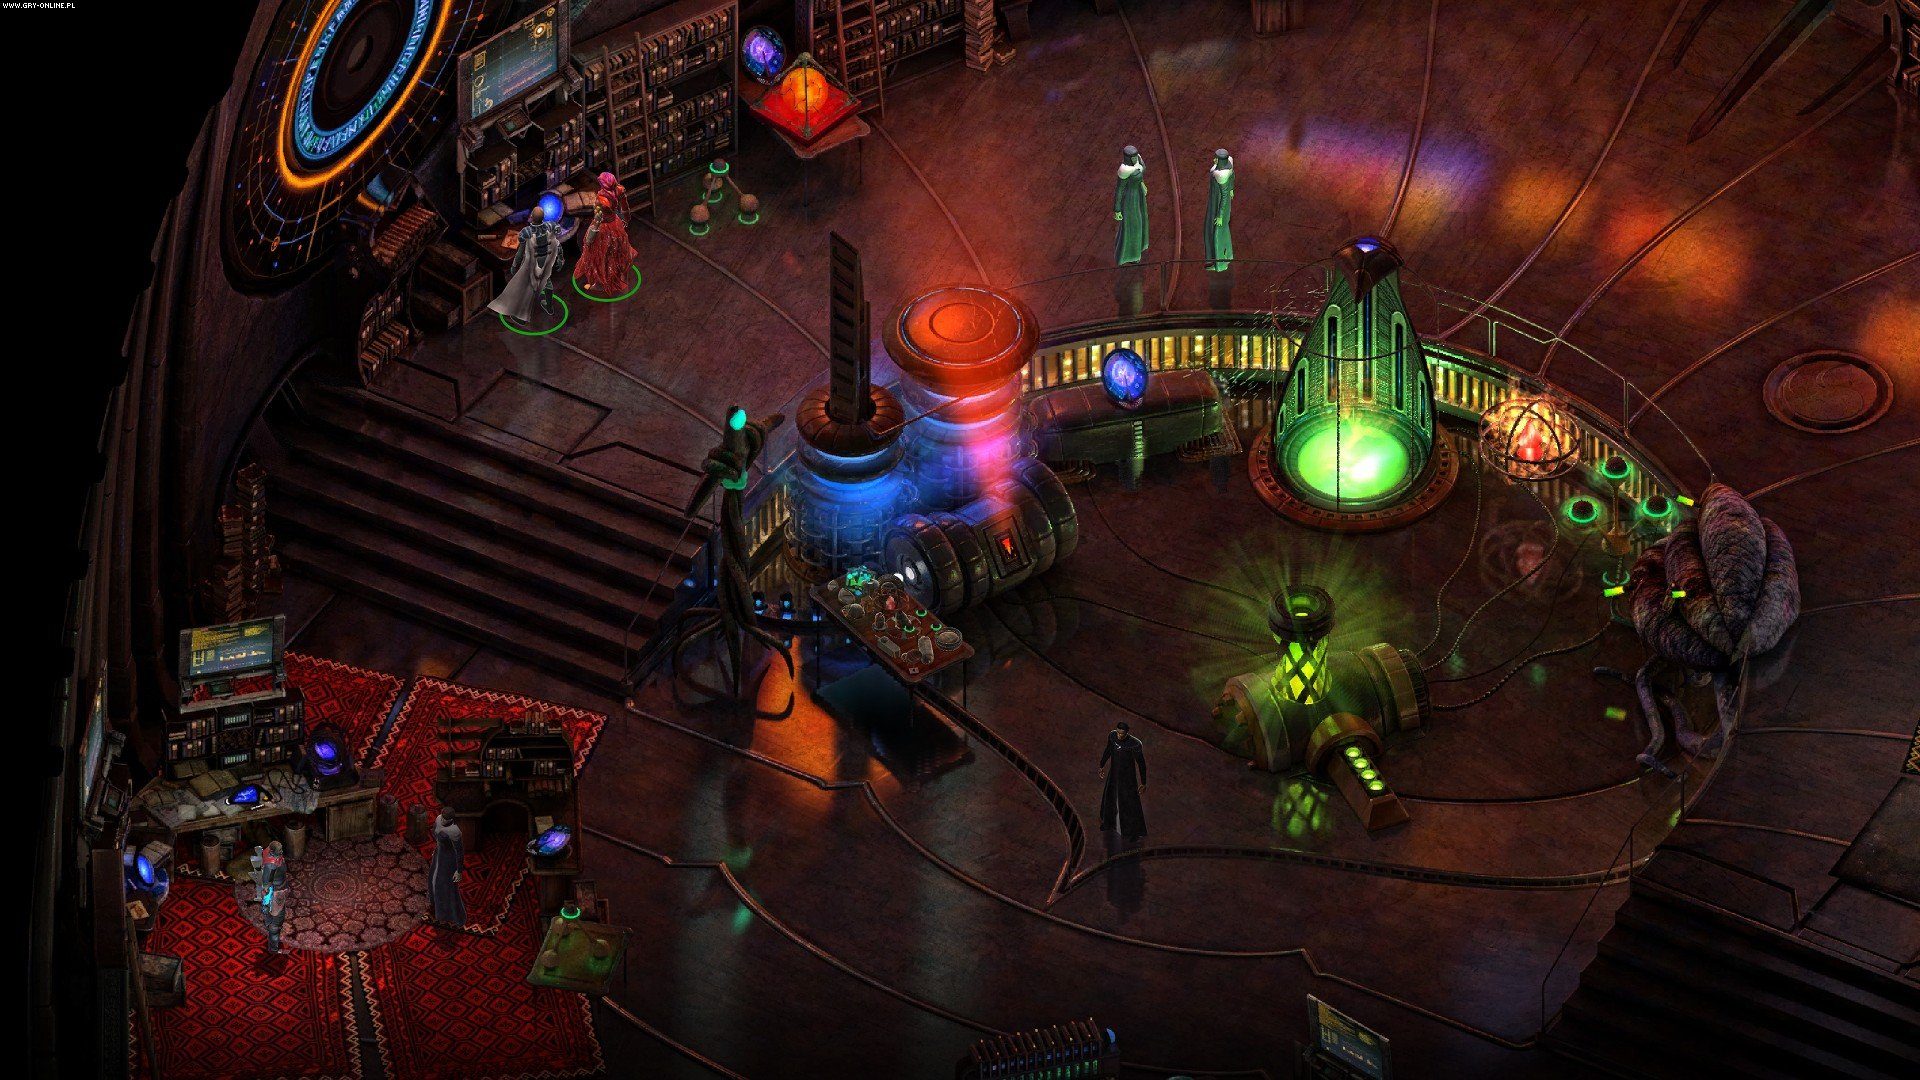 Torment: Tides of Numenera PC, PS4, XONE Games Image 23/28, inXile entertainment, Techland